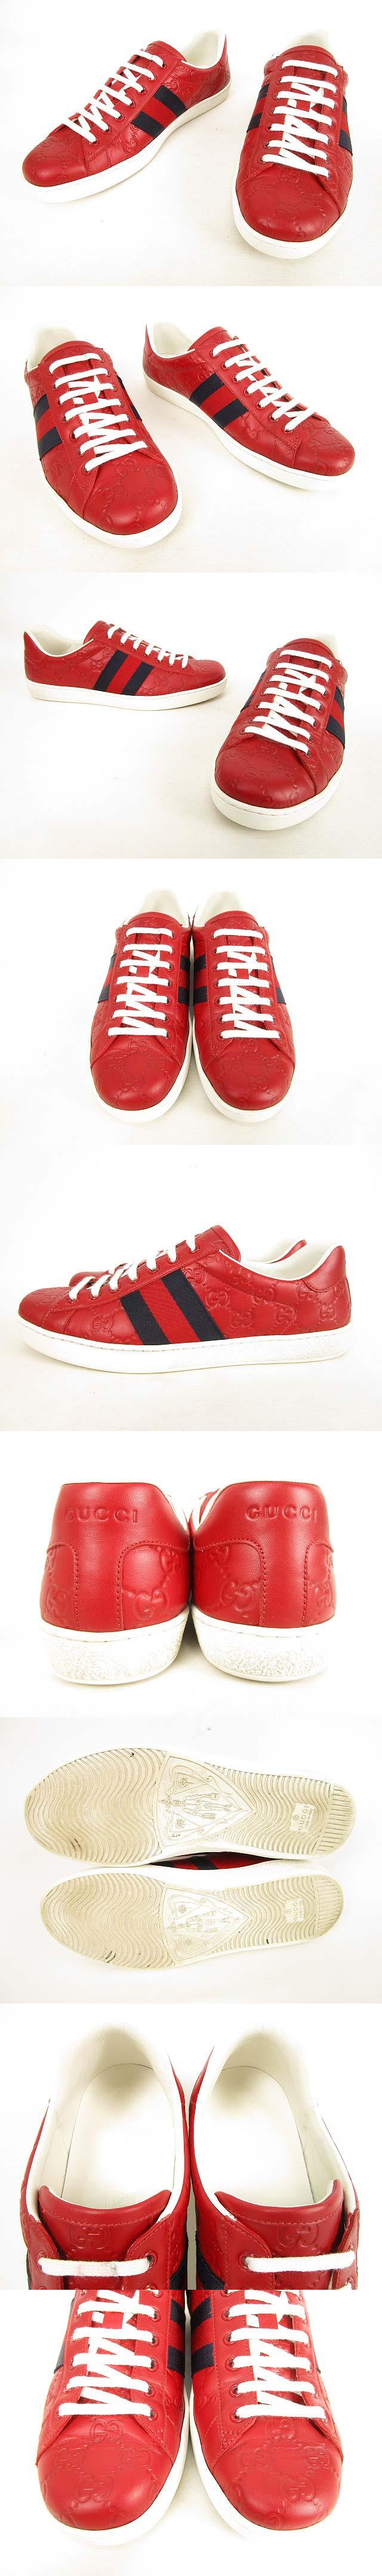 67255cd7fc9 Gucci GUCCI 386750 Ace ACE sneakers GG Logo leather 8 red  AA   Real ...